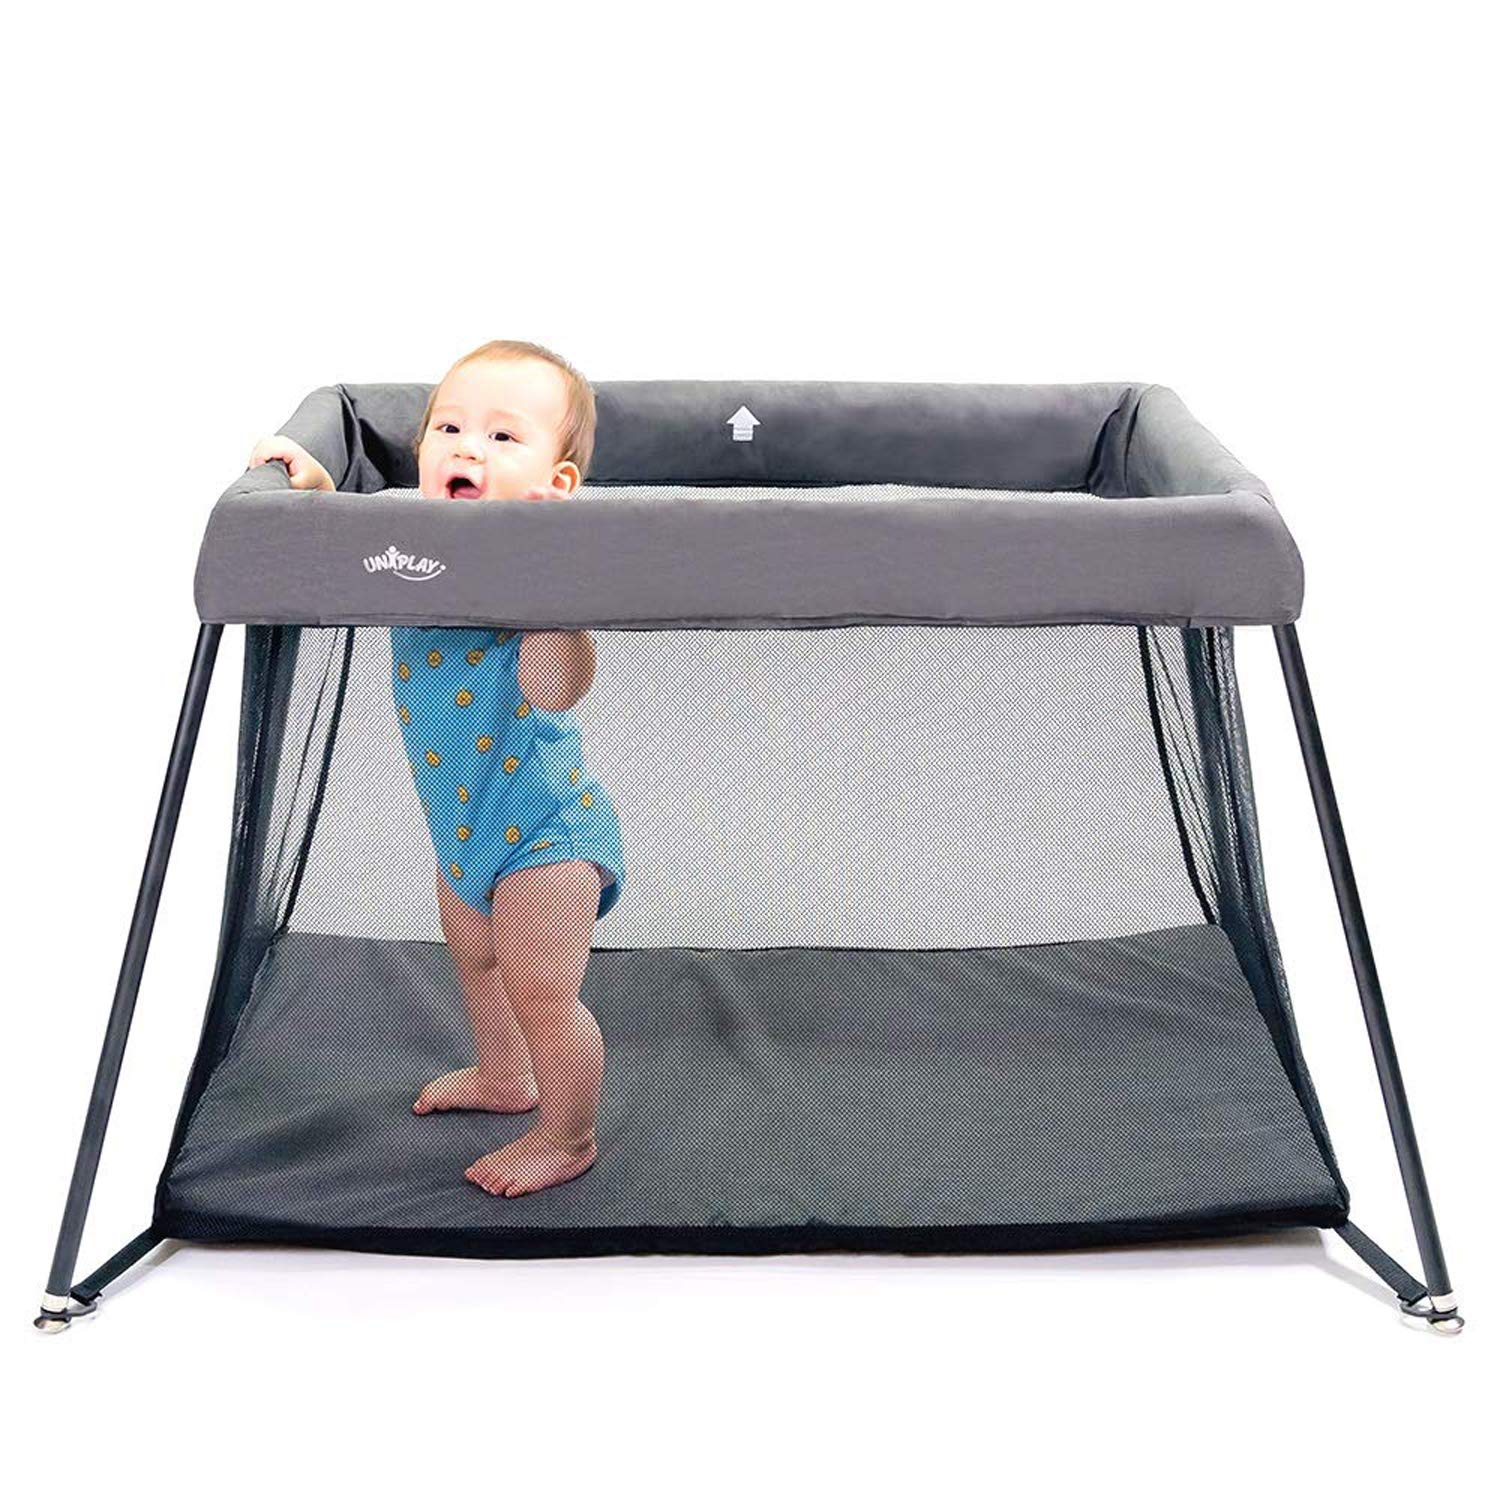 UNiPlay Portable Lightweight Baby Playpen Playard Travel Crib Pack 'N Play with Comfortable Mattress and Breathable Mesh Fabric